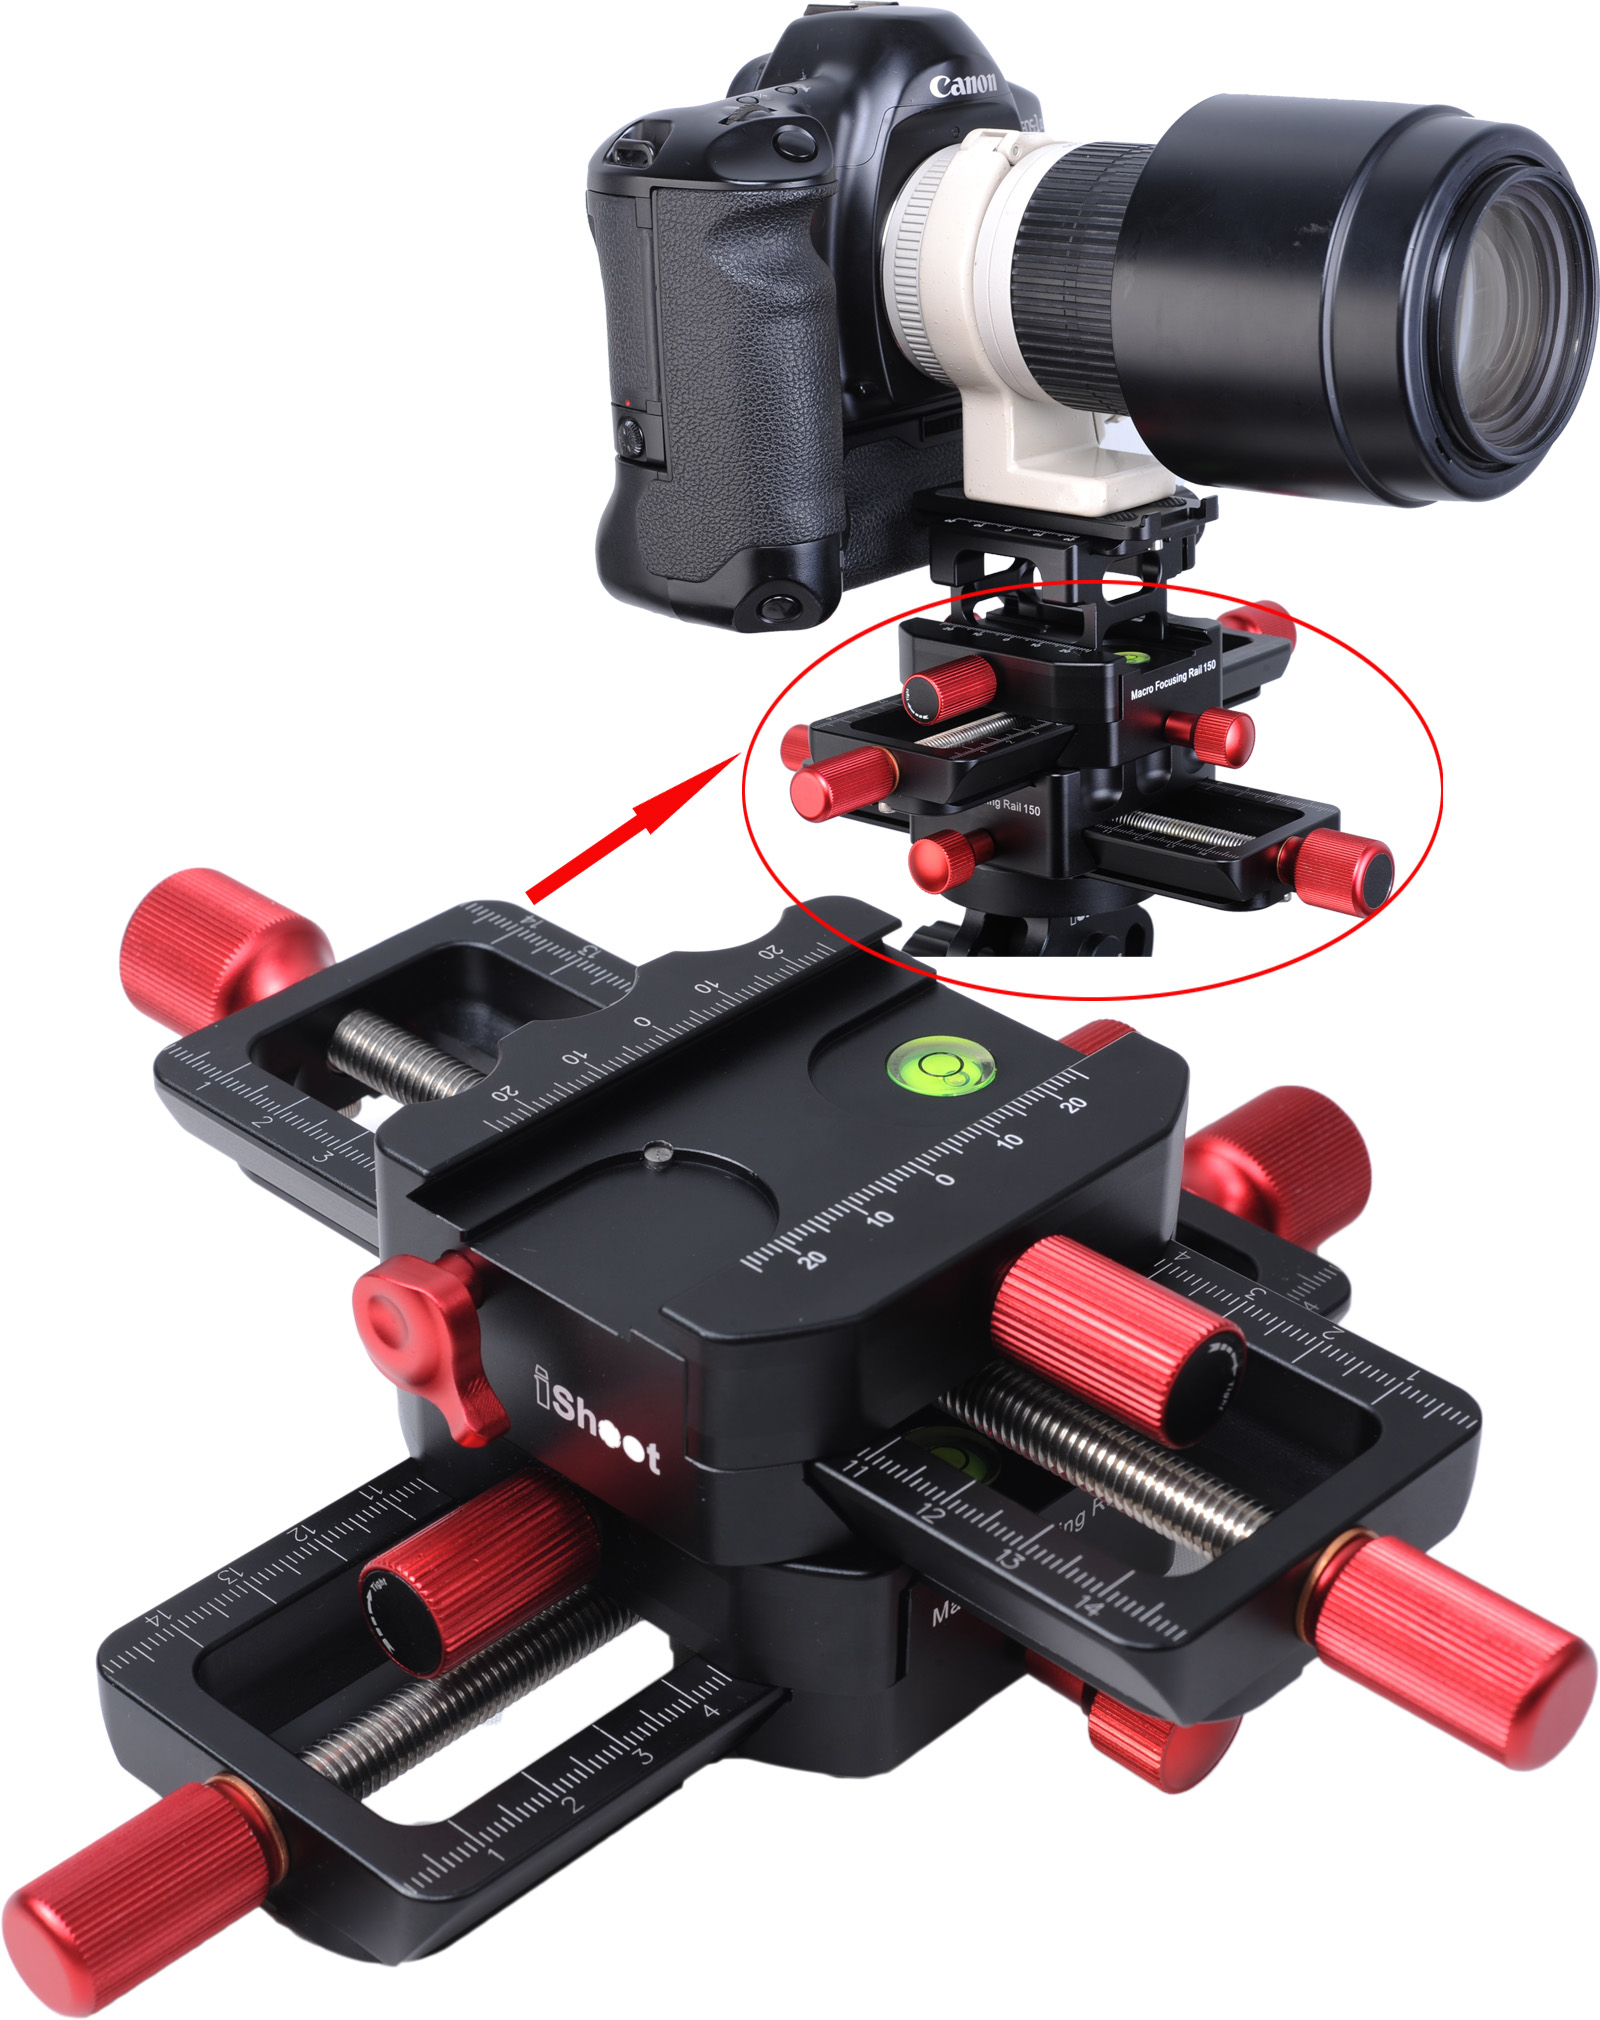 150mm 4-way Macro Focusing Rail Slider Head With Arca-Swiss Fit Clamp Quick Release Plate for Tripod Ballhead Canon Sony Camera setto leofoto mp 150 camera accessories tripod head photography macro fotografie macro focusing rail